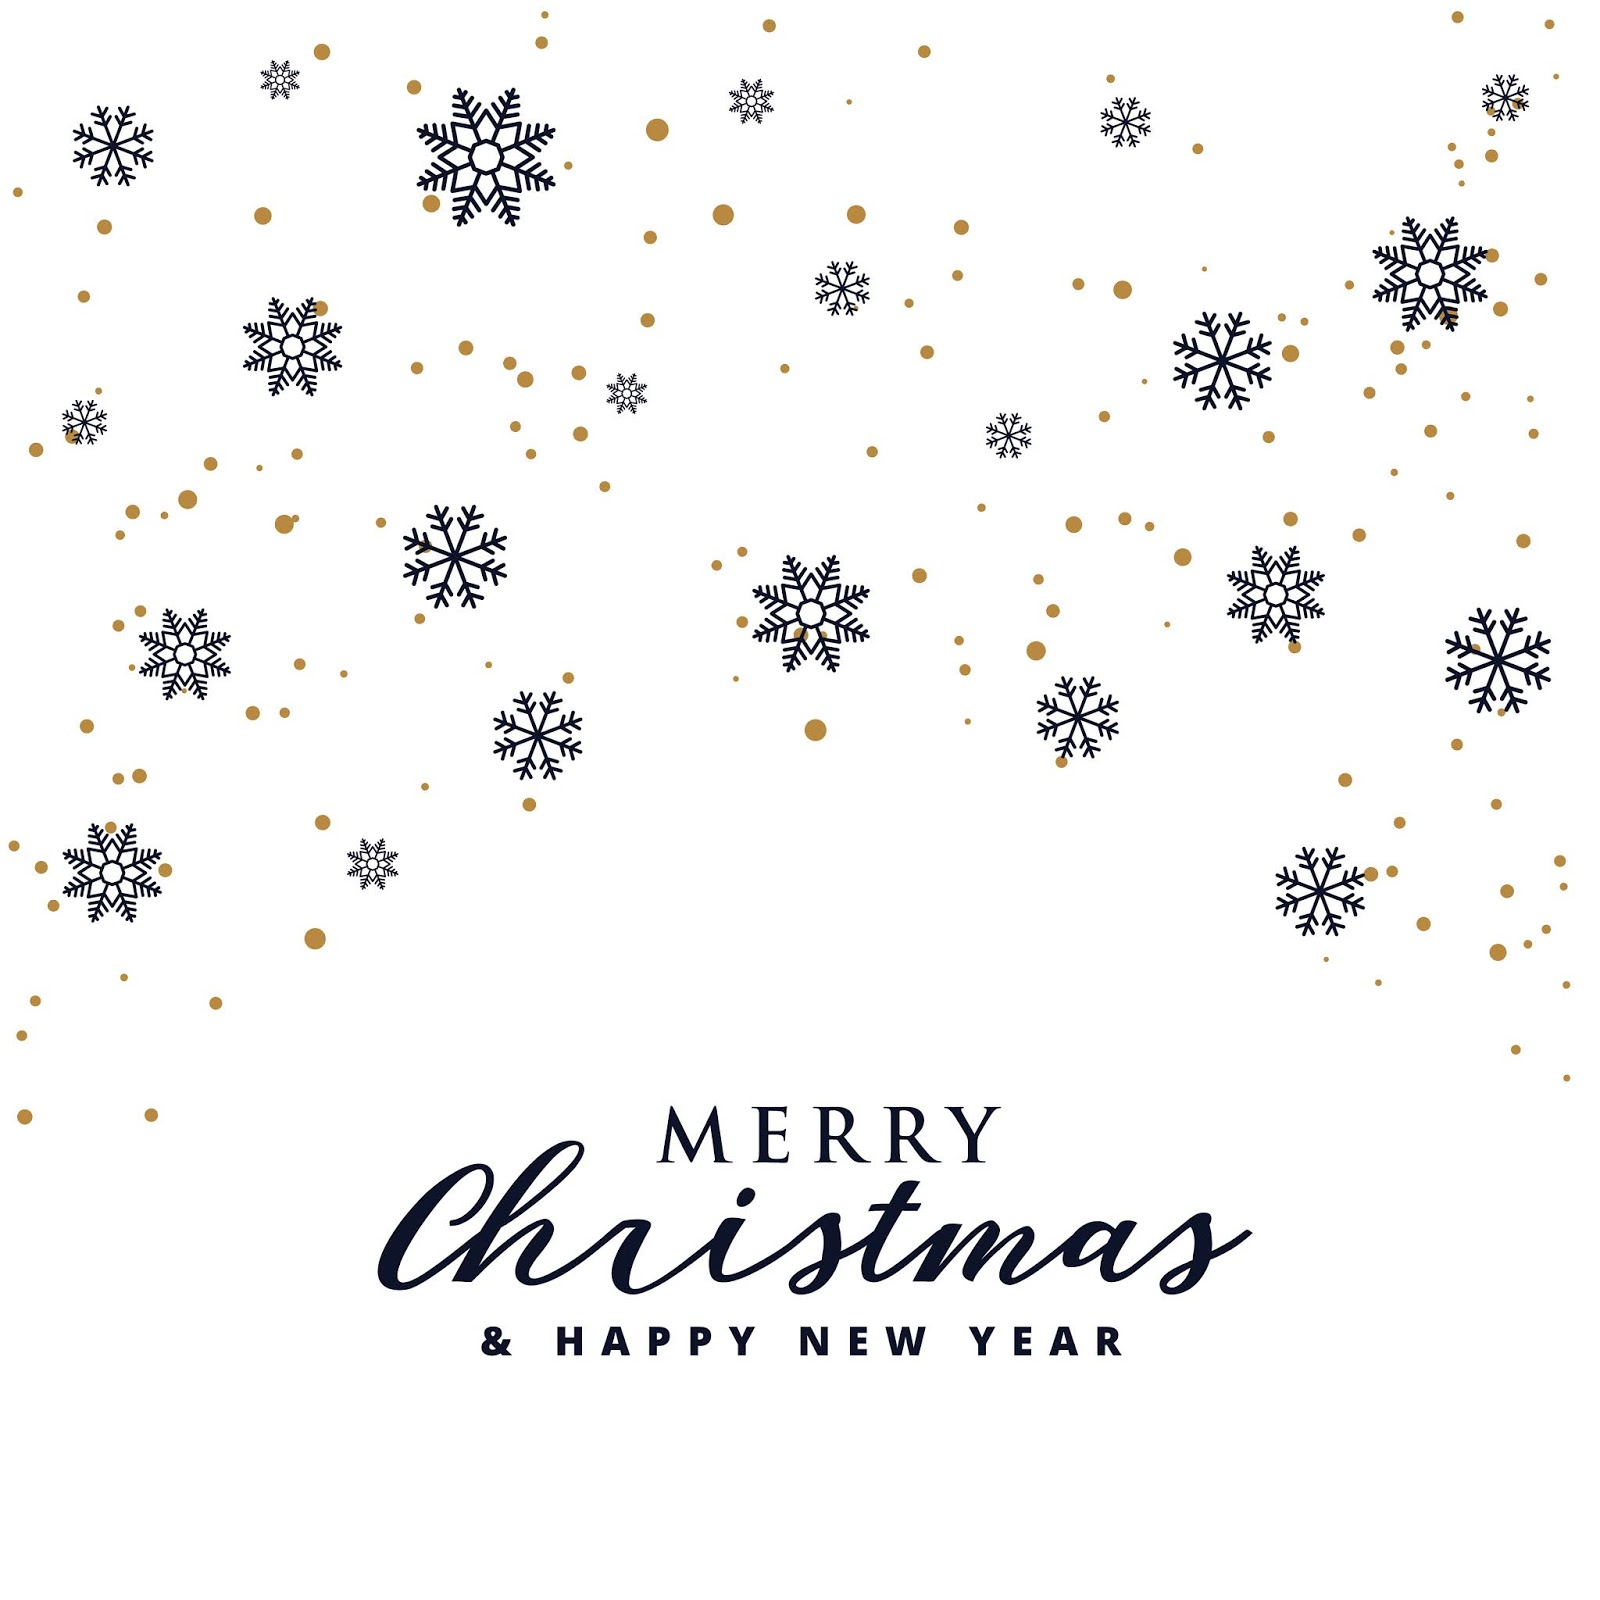 Elegant Merry Christmas Festival Background With Snowflakes Free Download Vector CDR, AI, EPS and PNG Formats